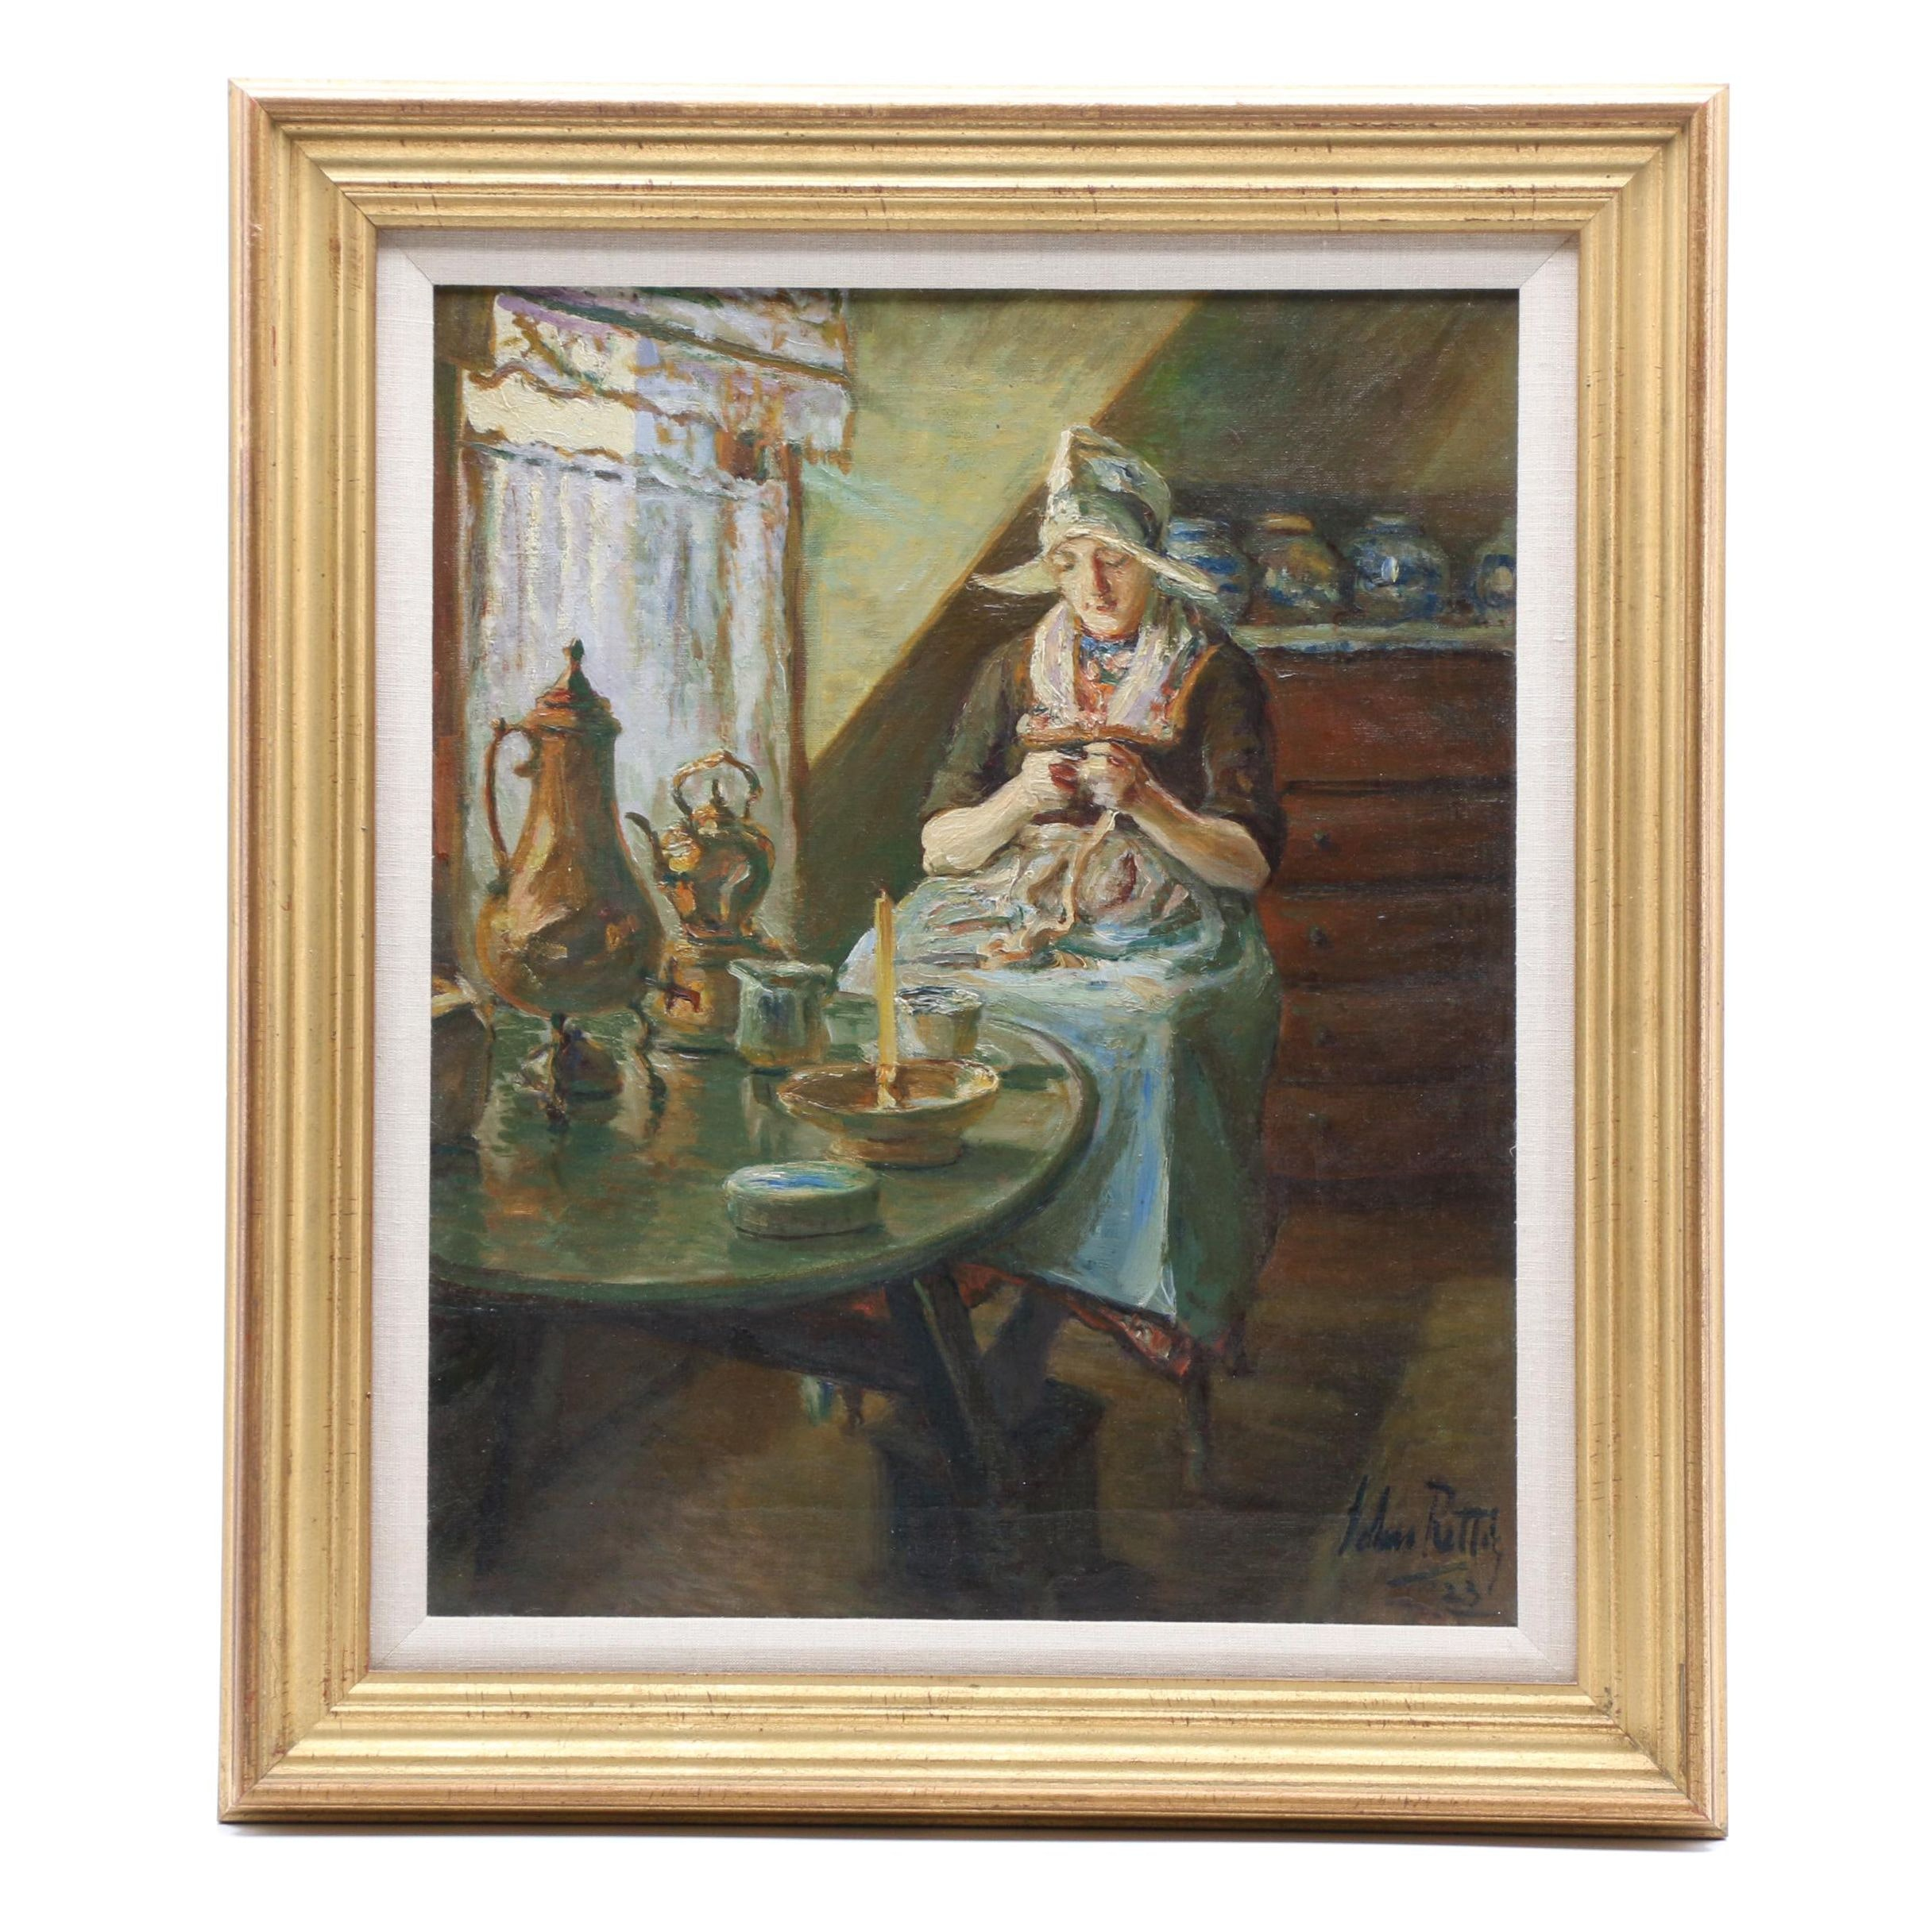 John Rettig 1923 Oil Painting of Dutch Genre Scene